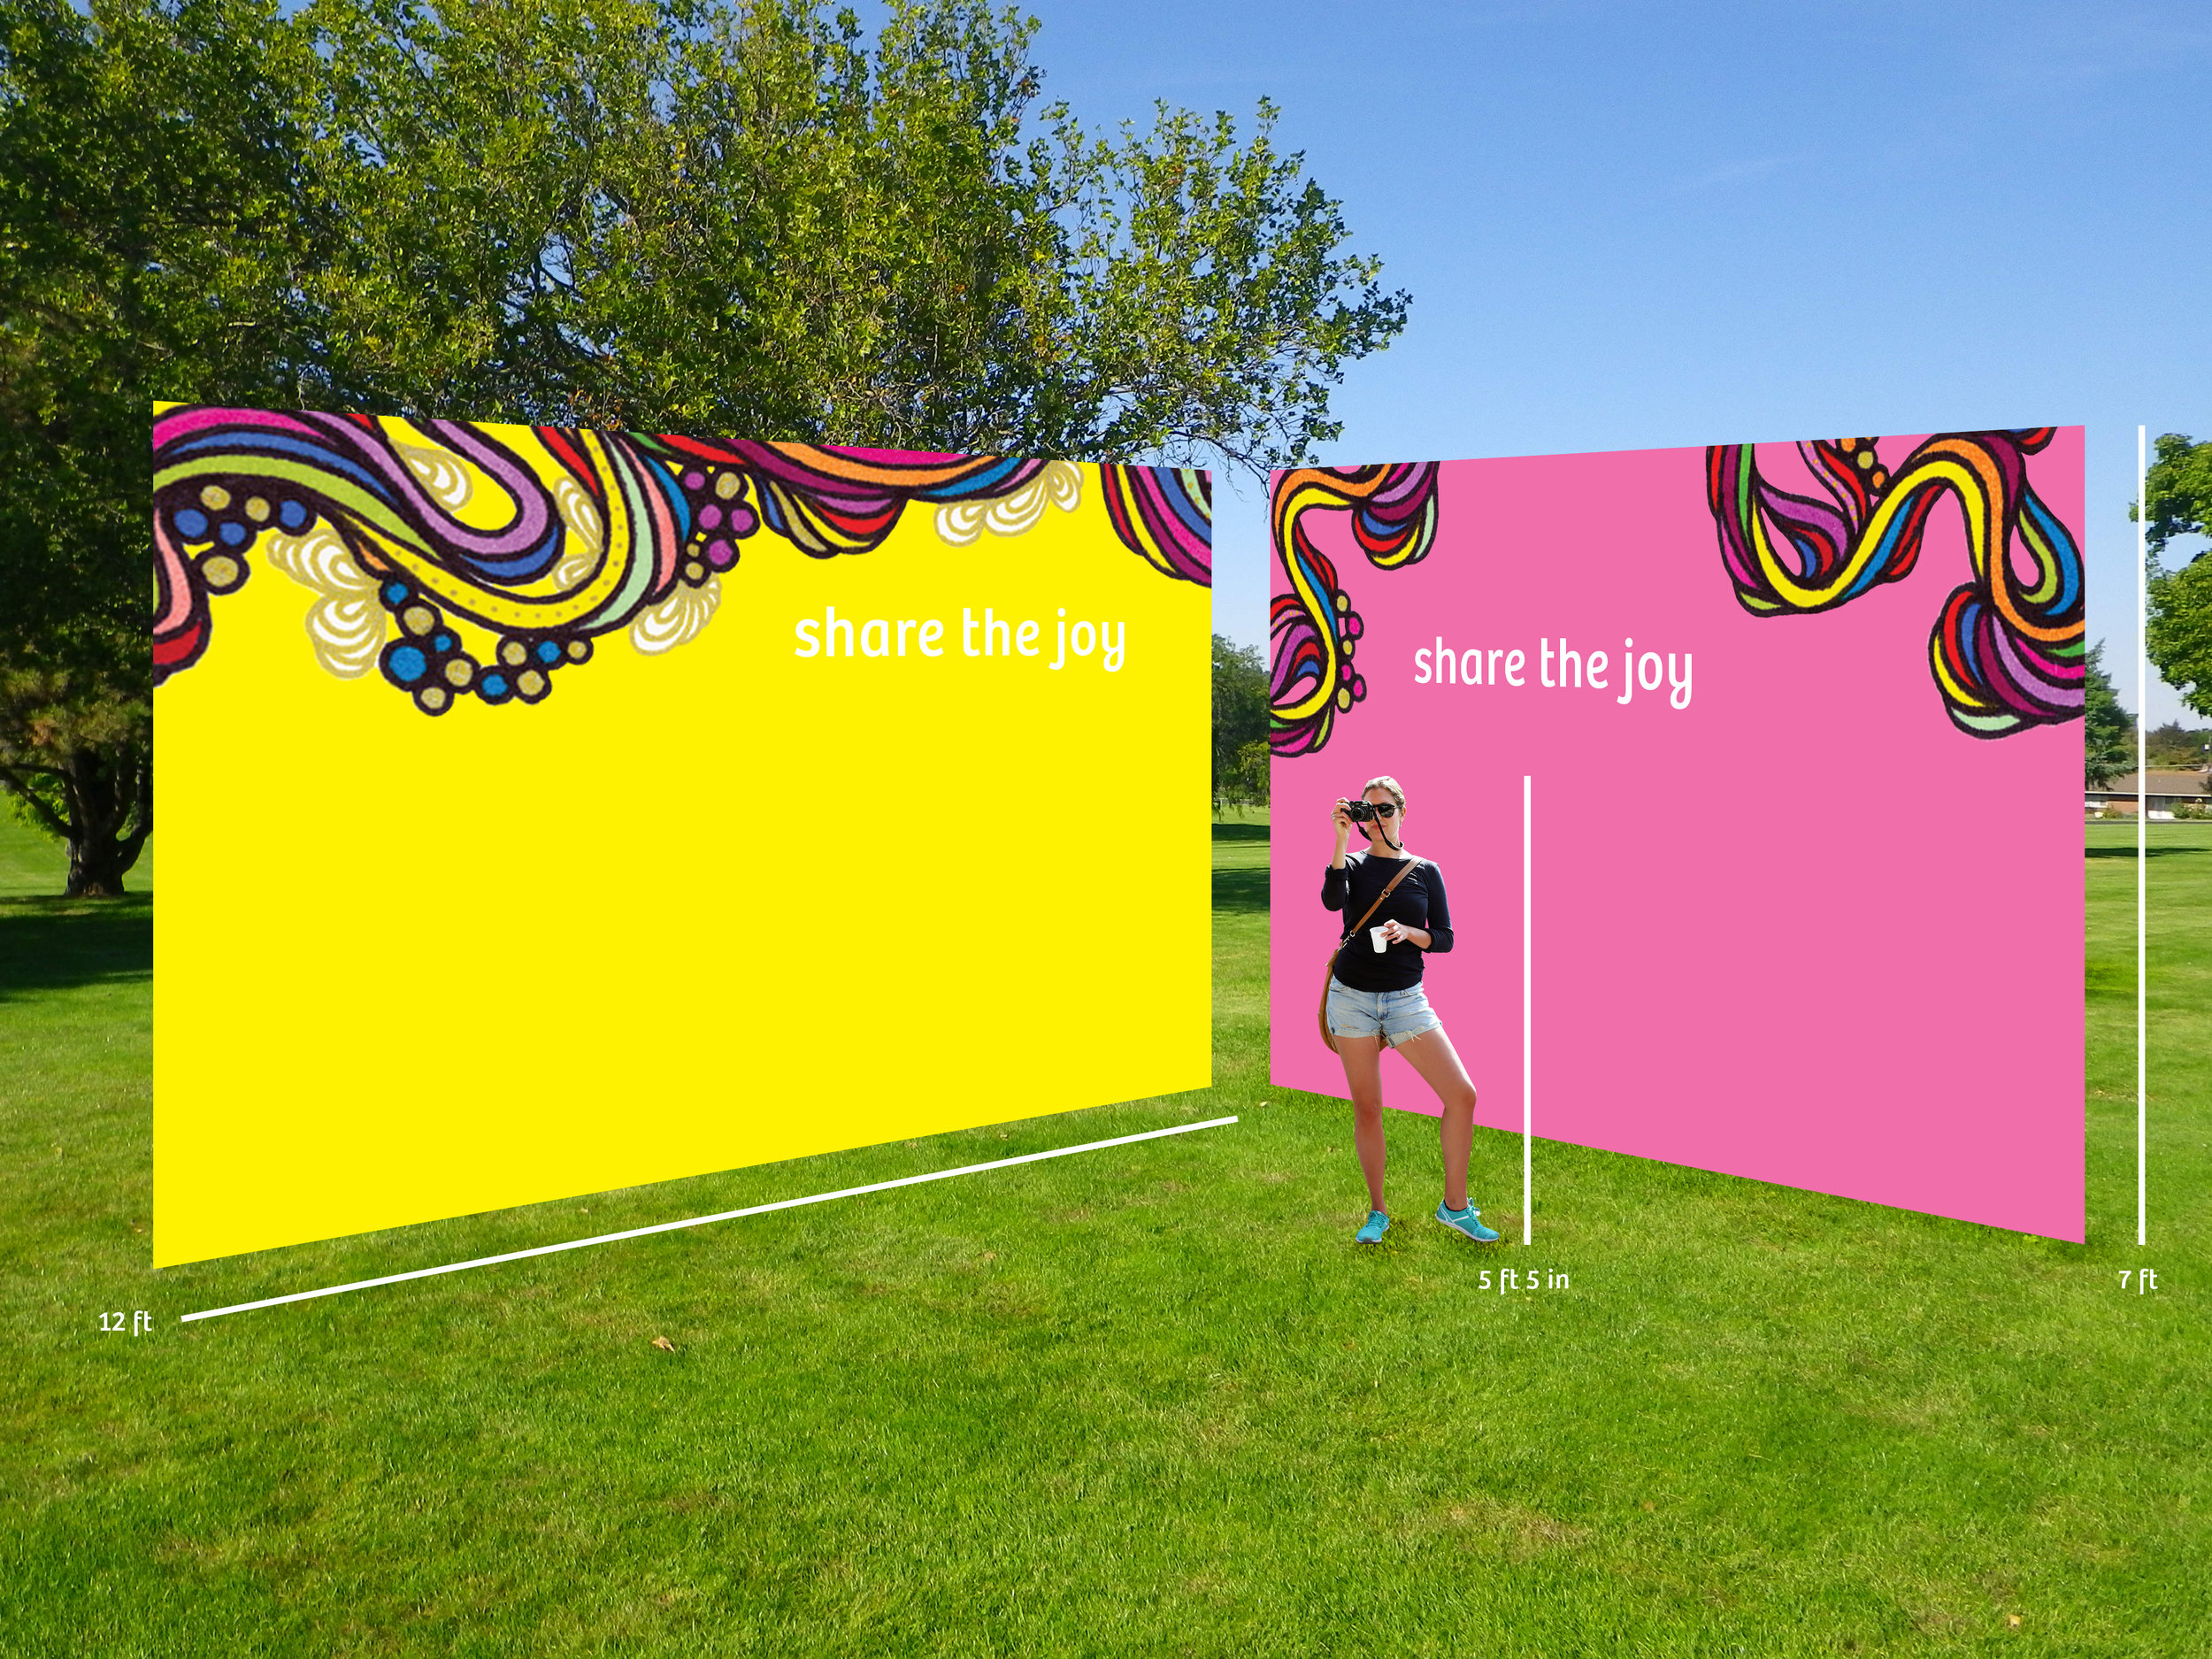 festival art walls mock up1 copy.jpg